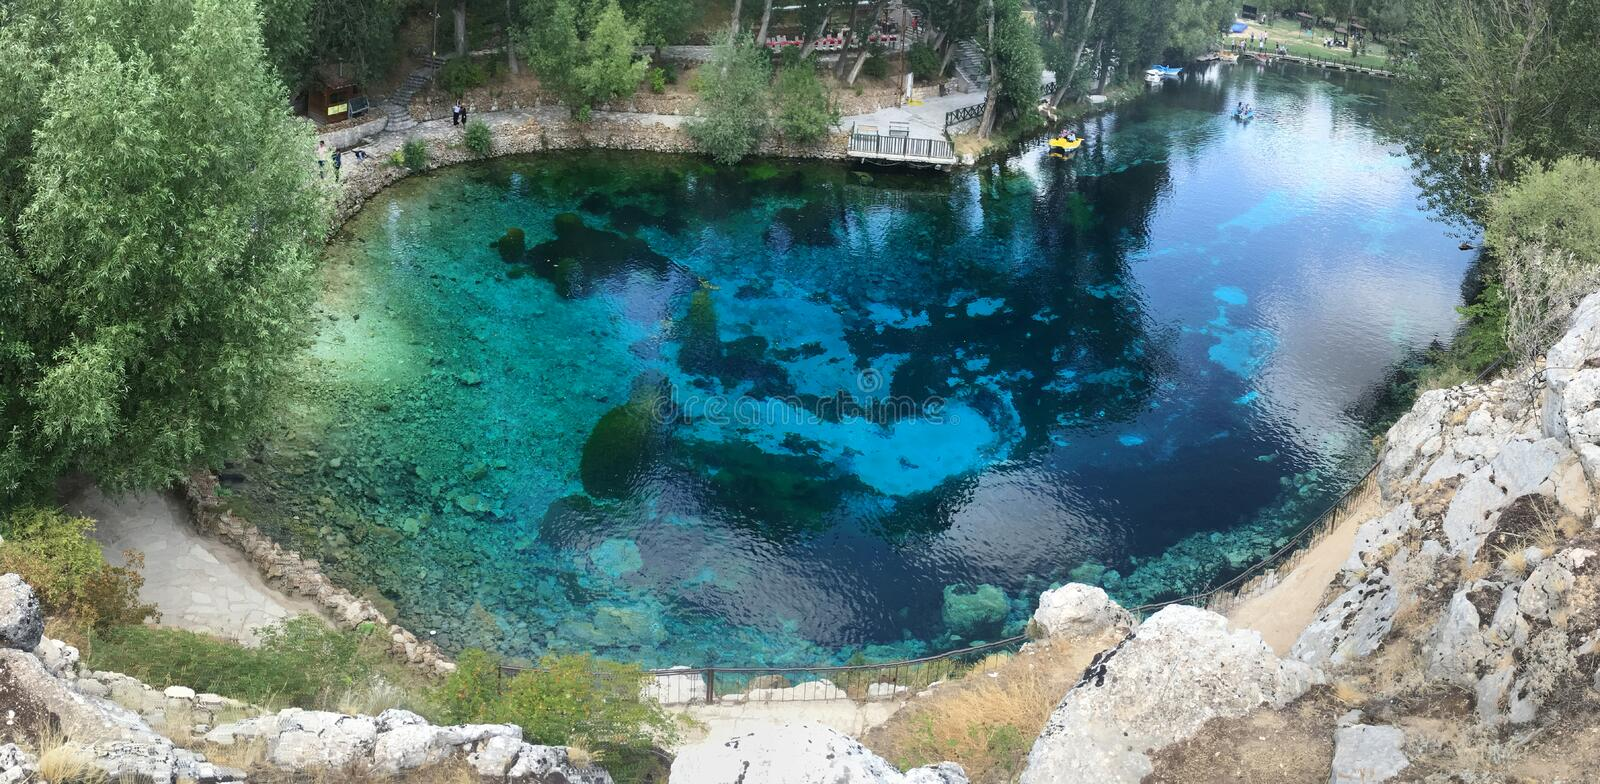 Download Blue Lake in Turkey stock photo. Image of green, august - 99878086